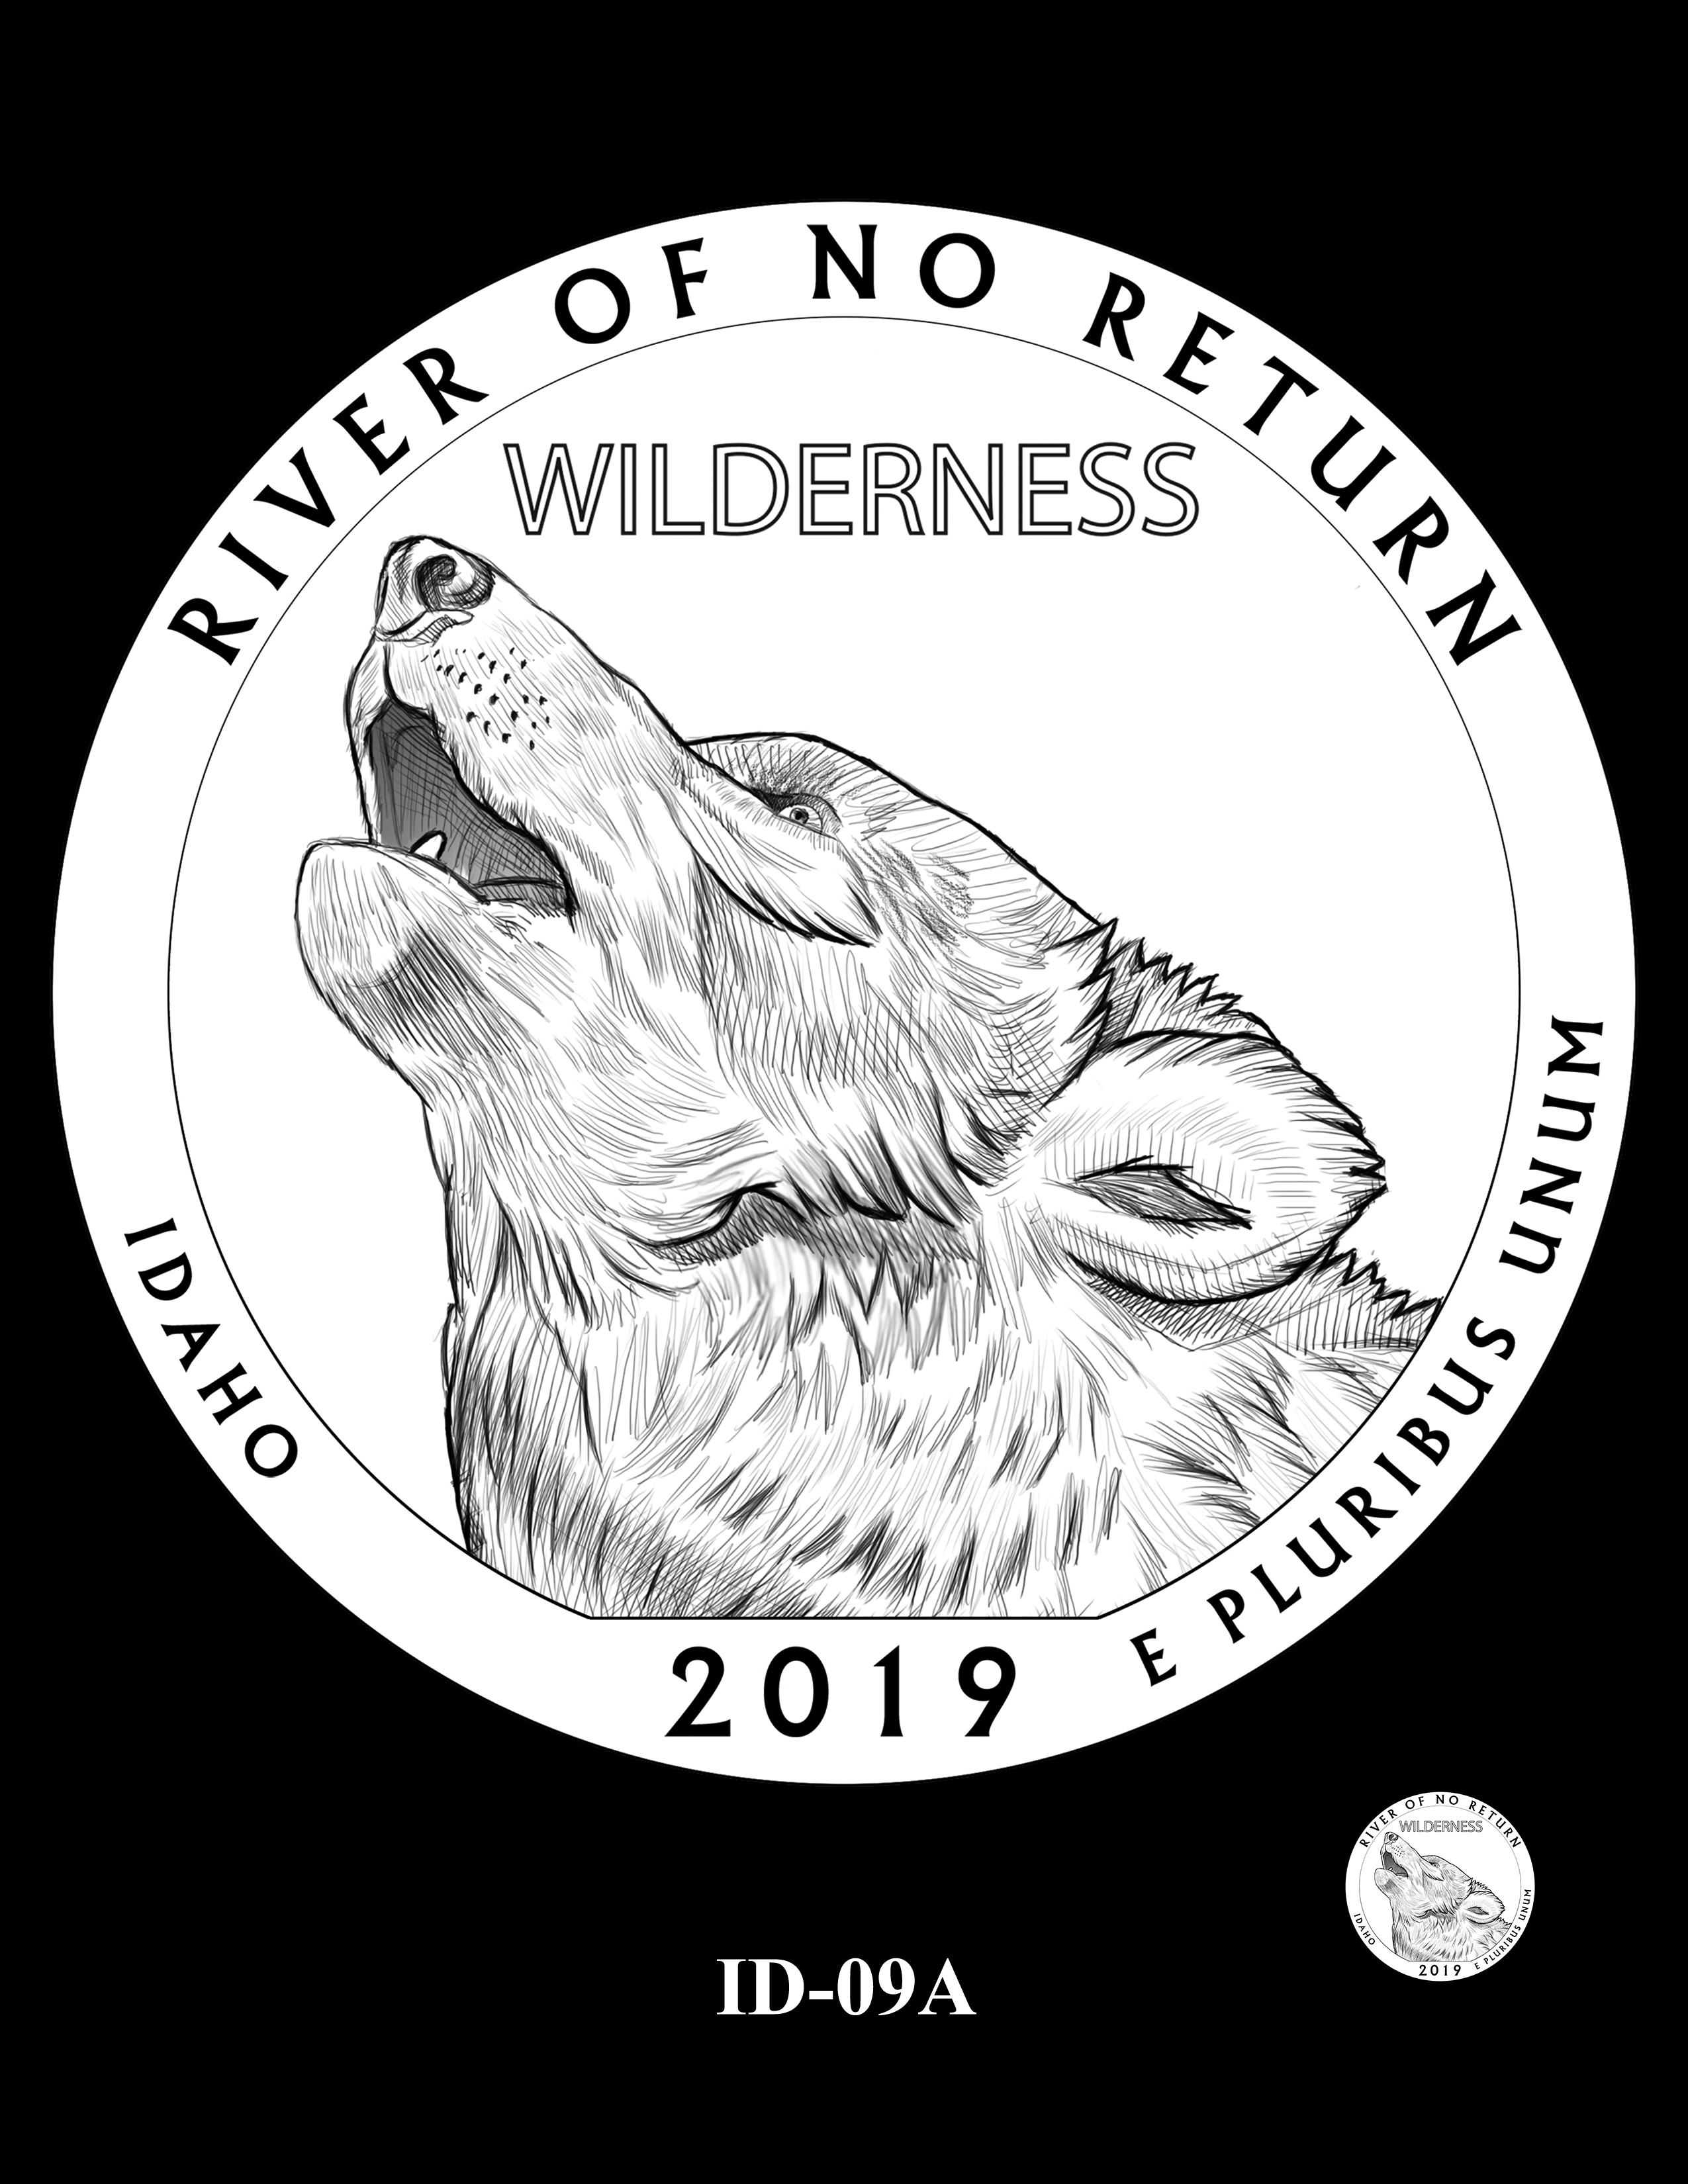 ID-09A -- 2019 America the Beautiful Quarters® Program